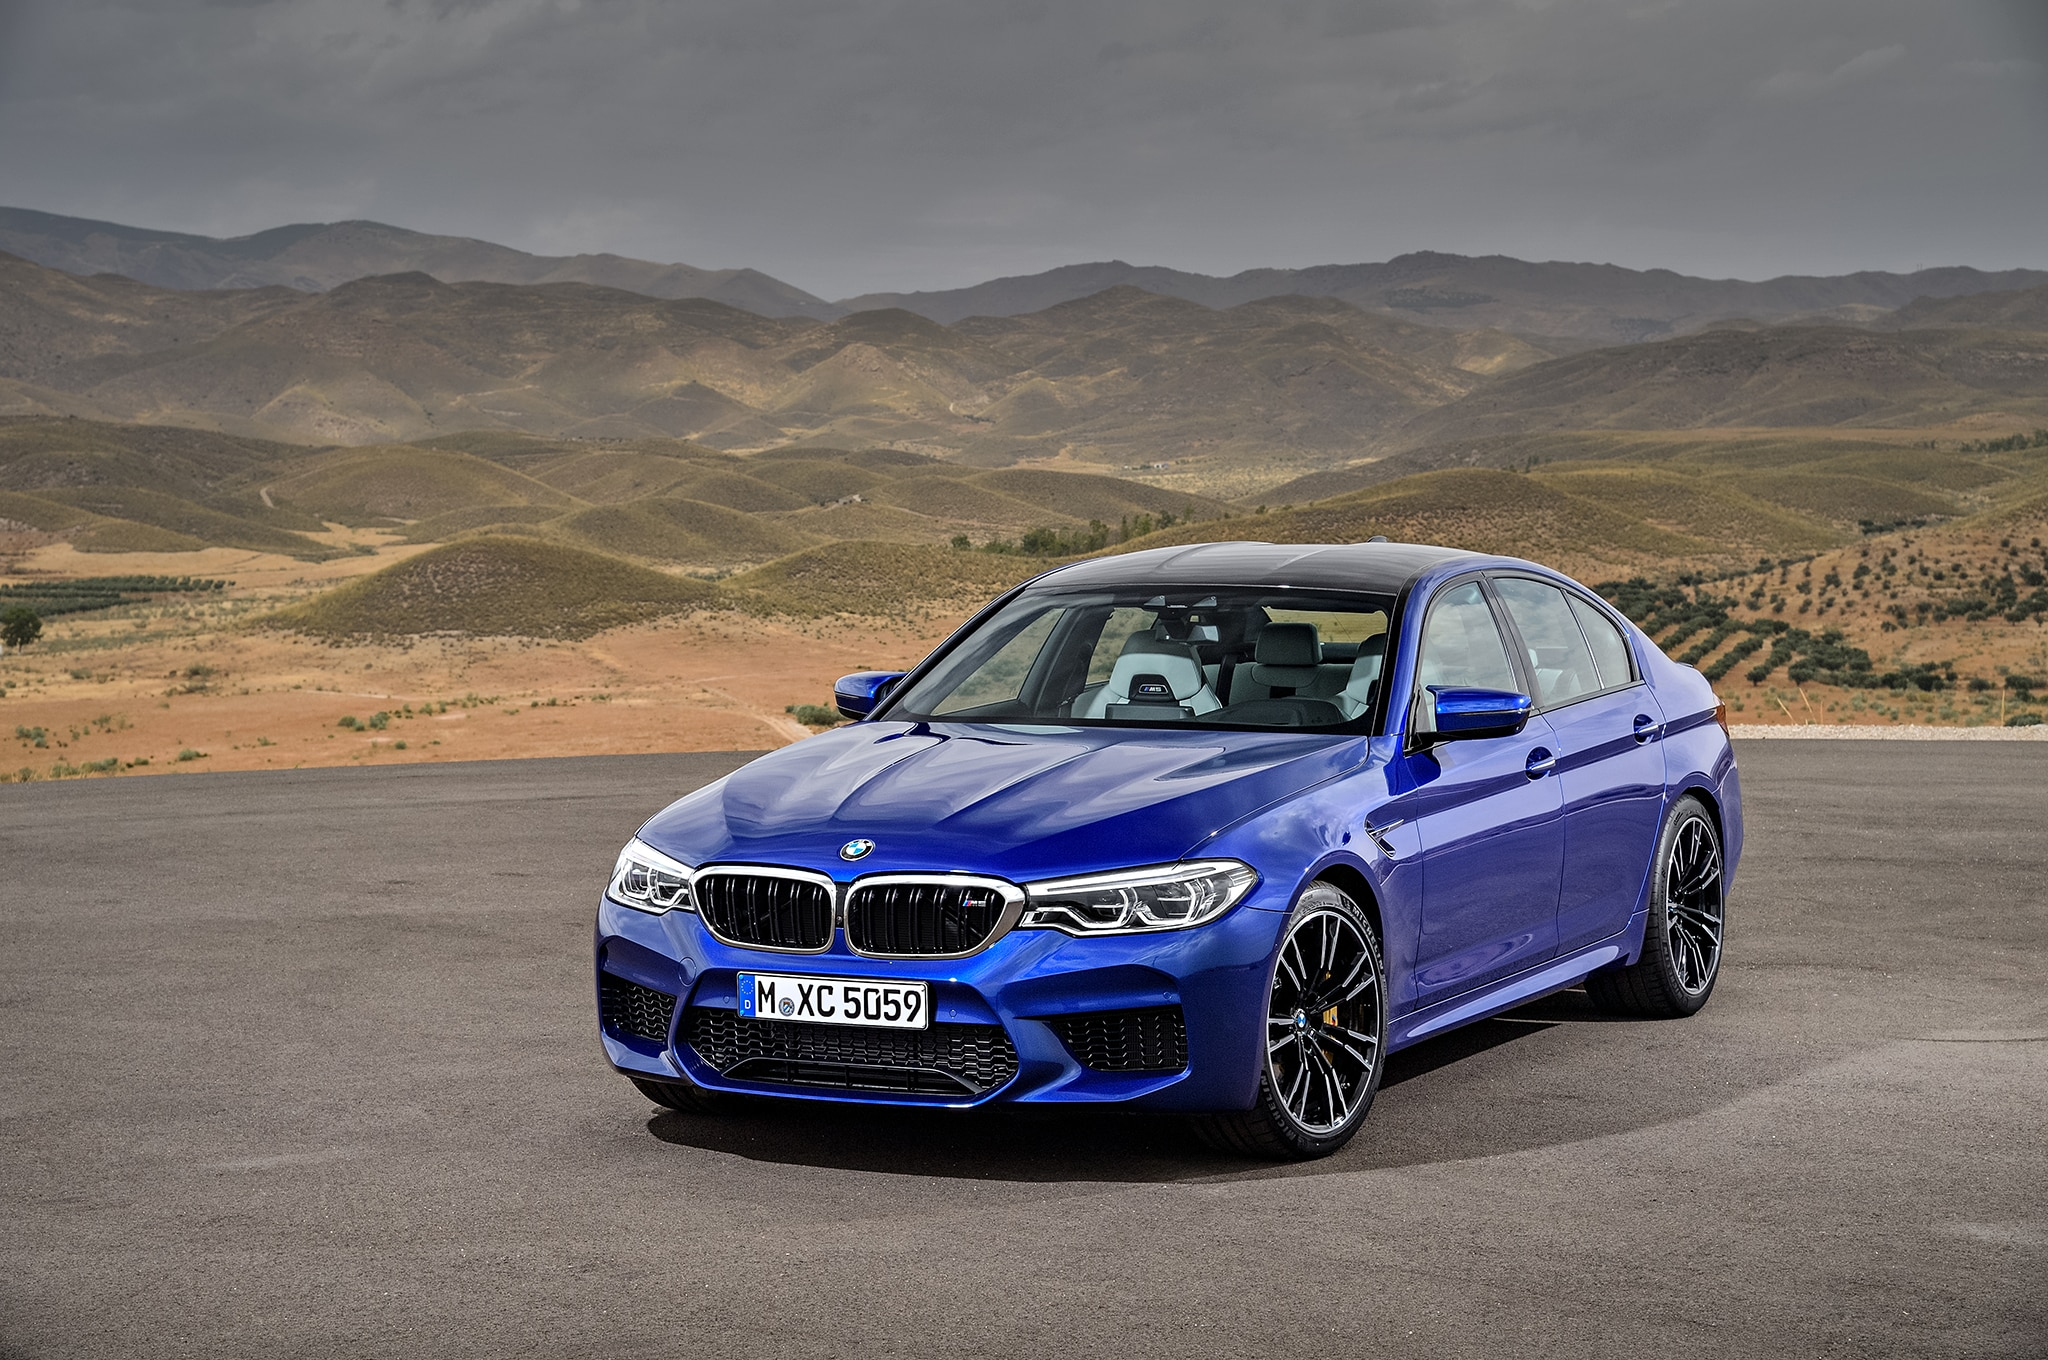 2018 Bmw M5 Arrives Packing A 600 Hp Twin Turbo V 8 Automobile Magazine